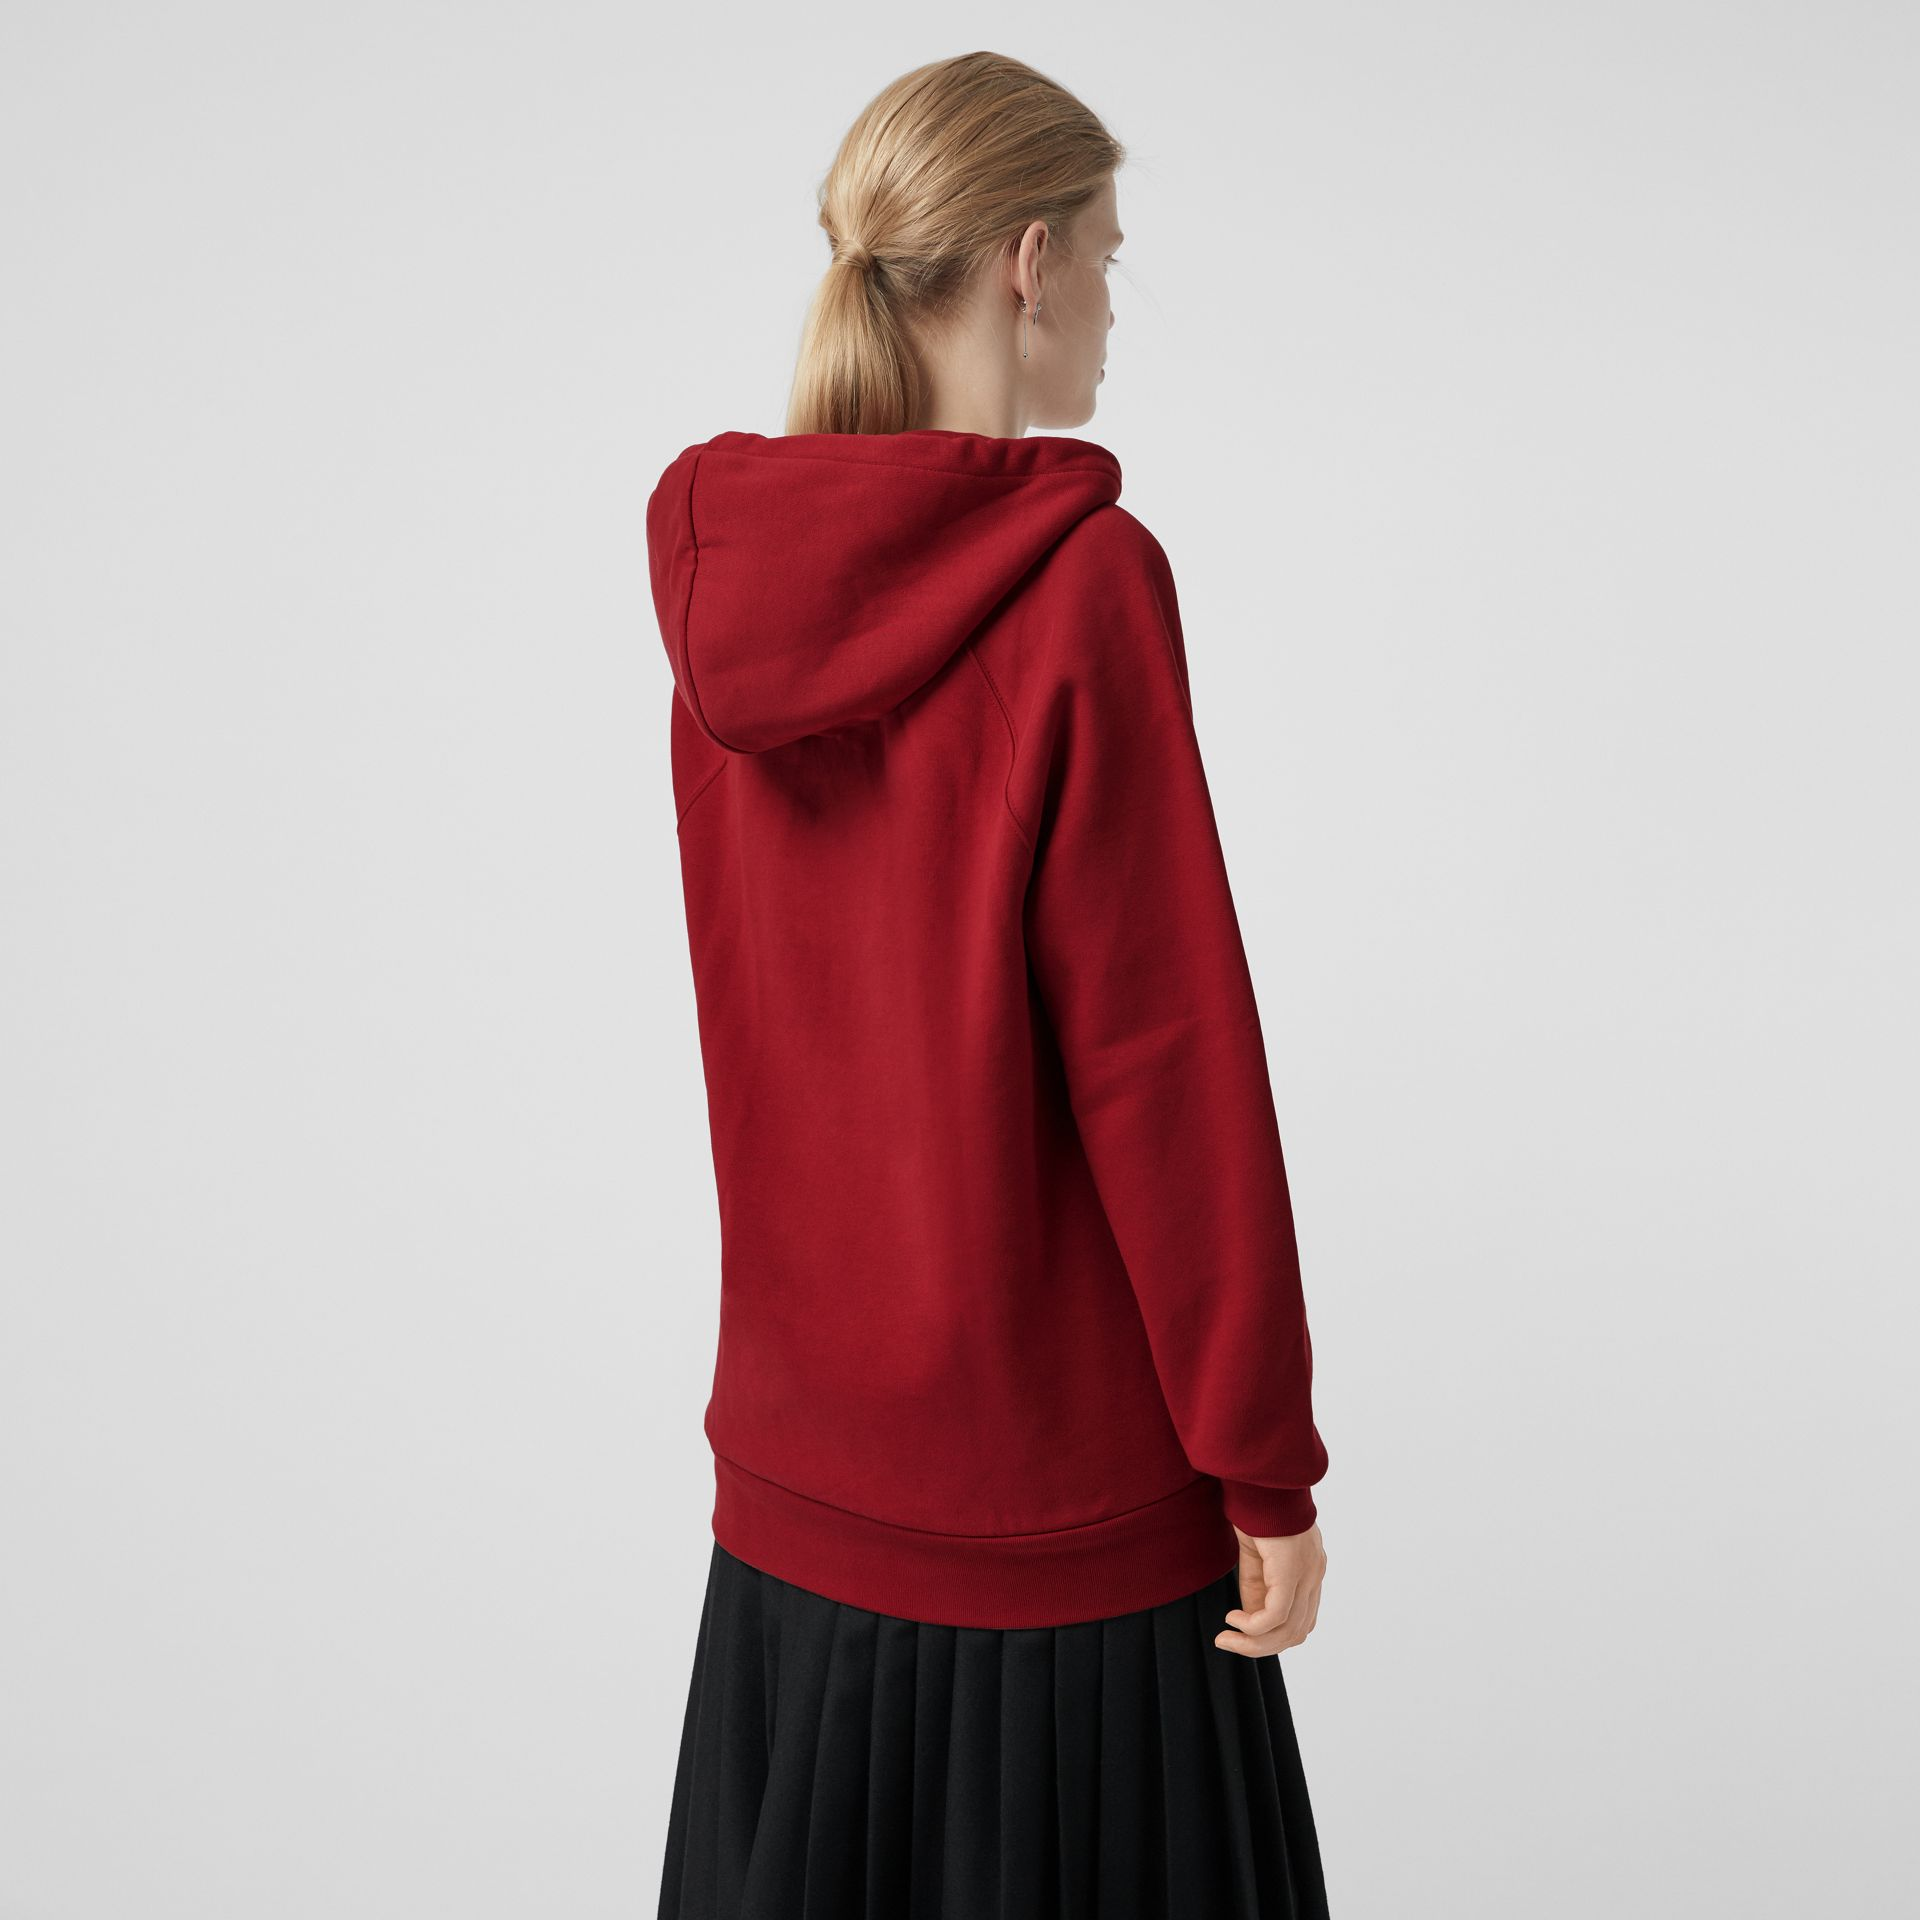 Embroidered Hooded Sweatshirt in Parade Red - Women | Burberry - gallery image 2